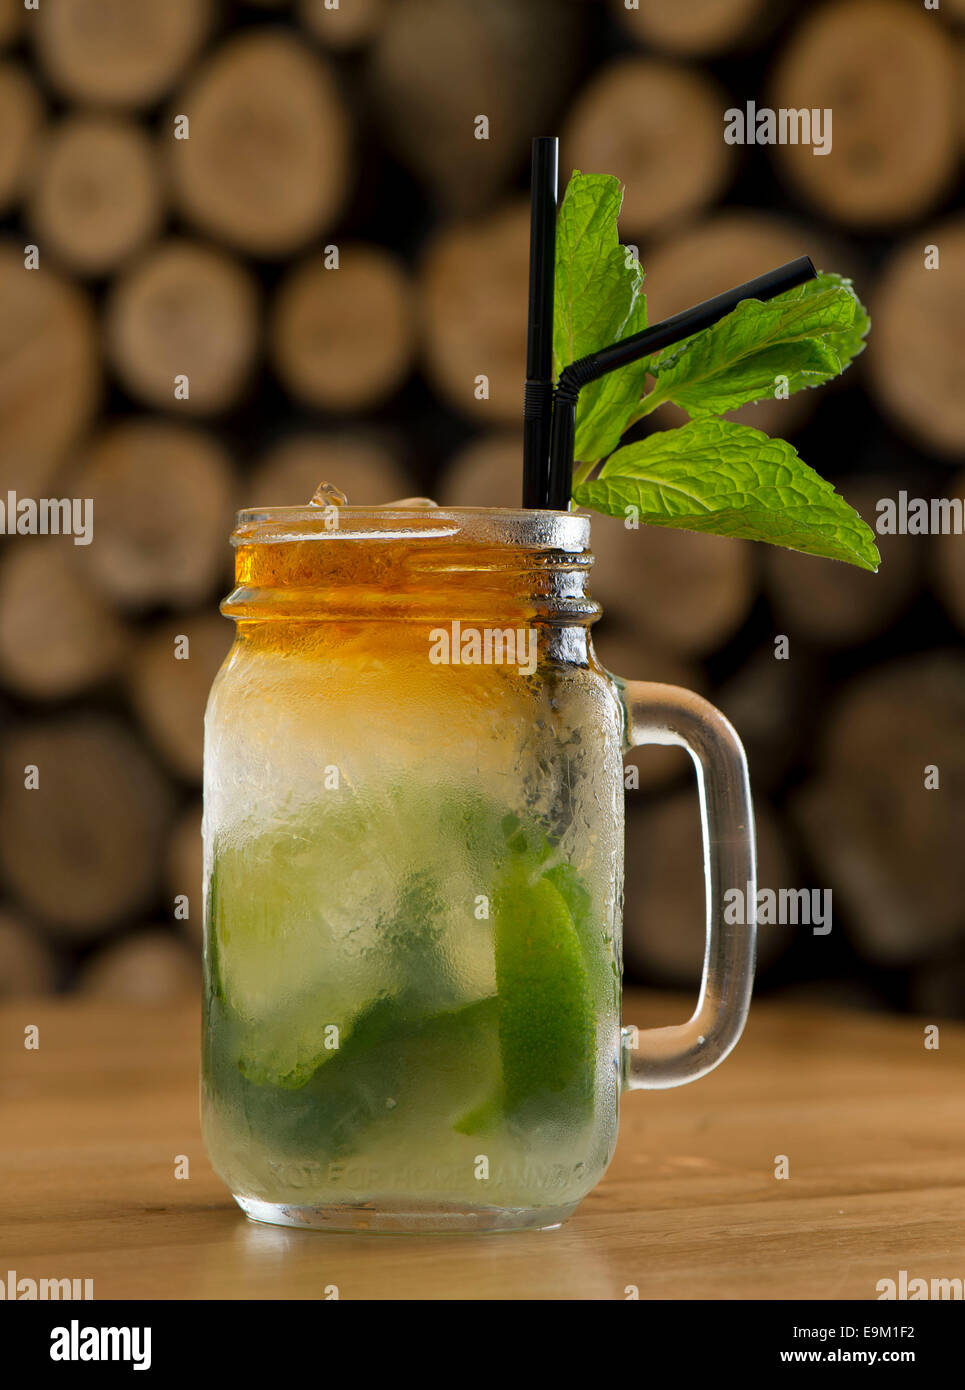 A mojito alcoholic cocktail served with mint, limes, sugar and rum in a bar. - Stock Image